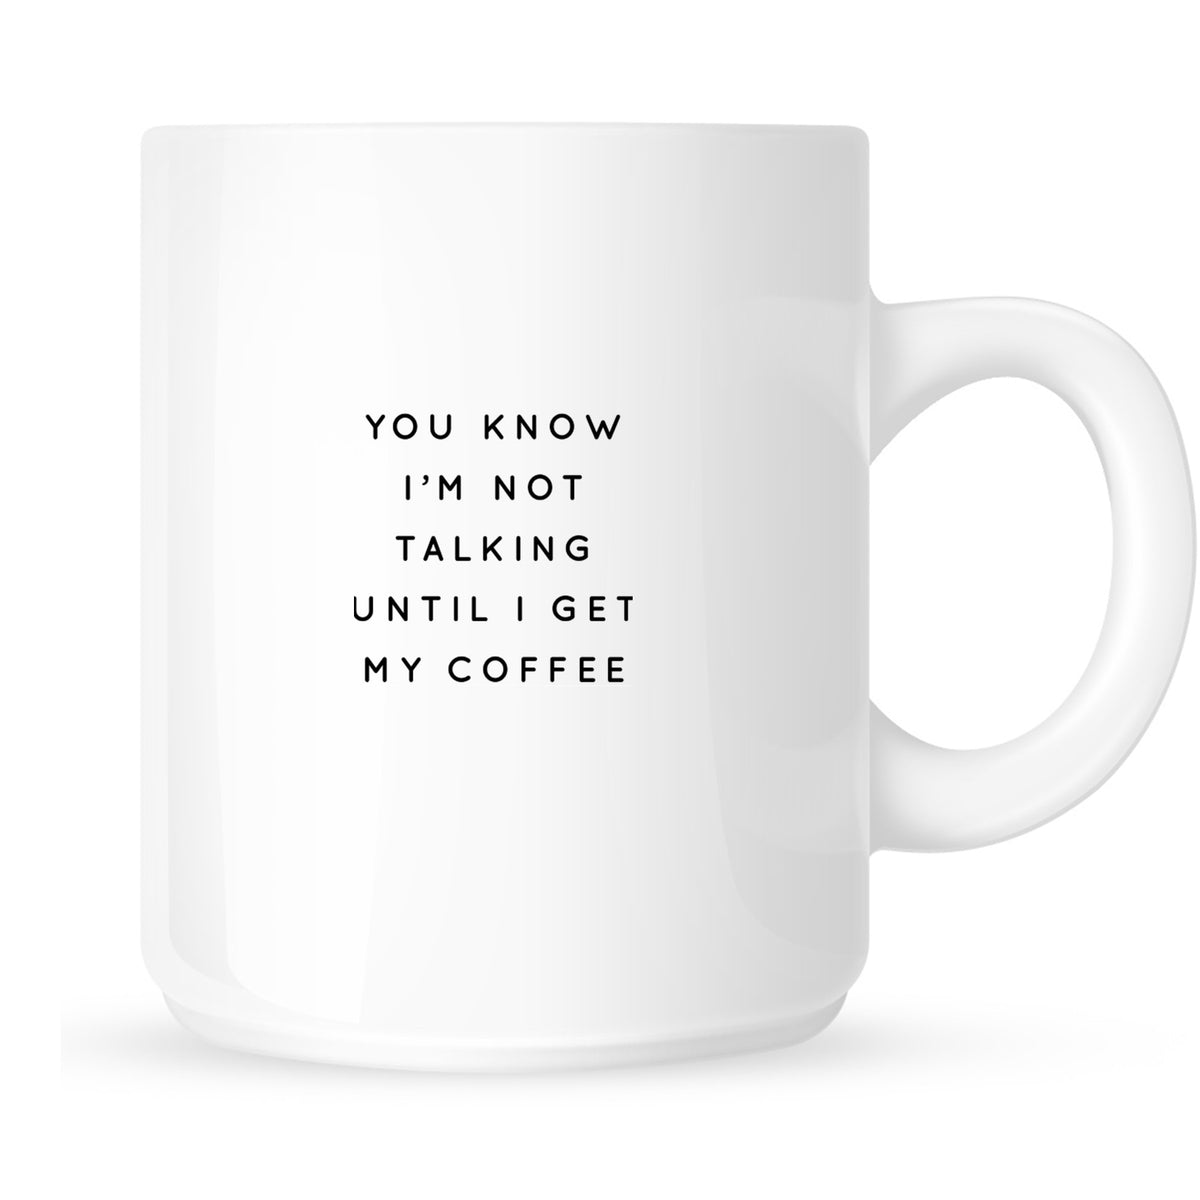 Mug - You Know I'm Not Talking Until I Get My Coffee